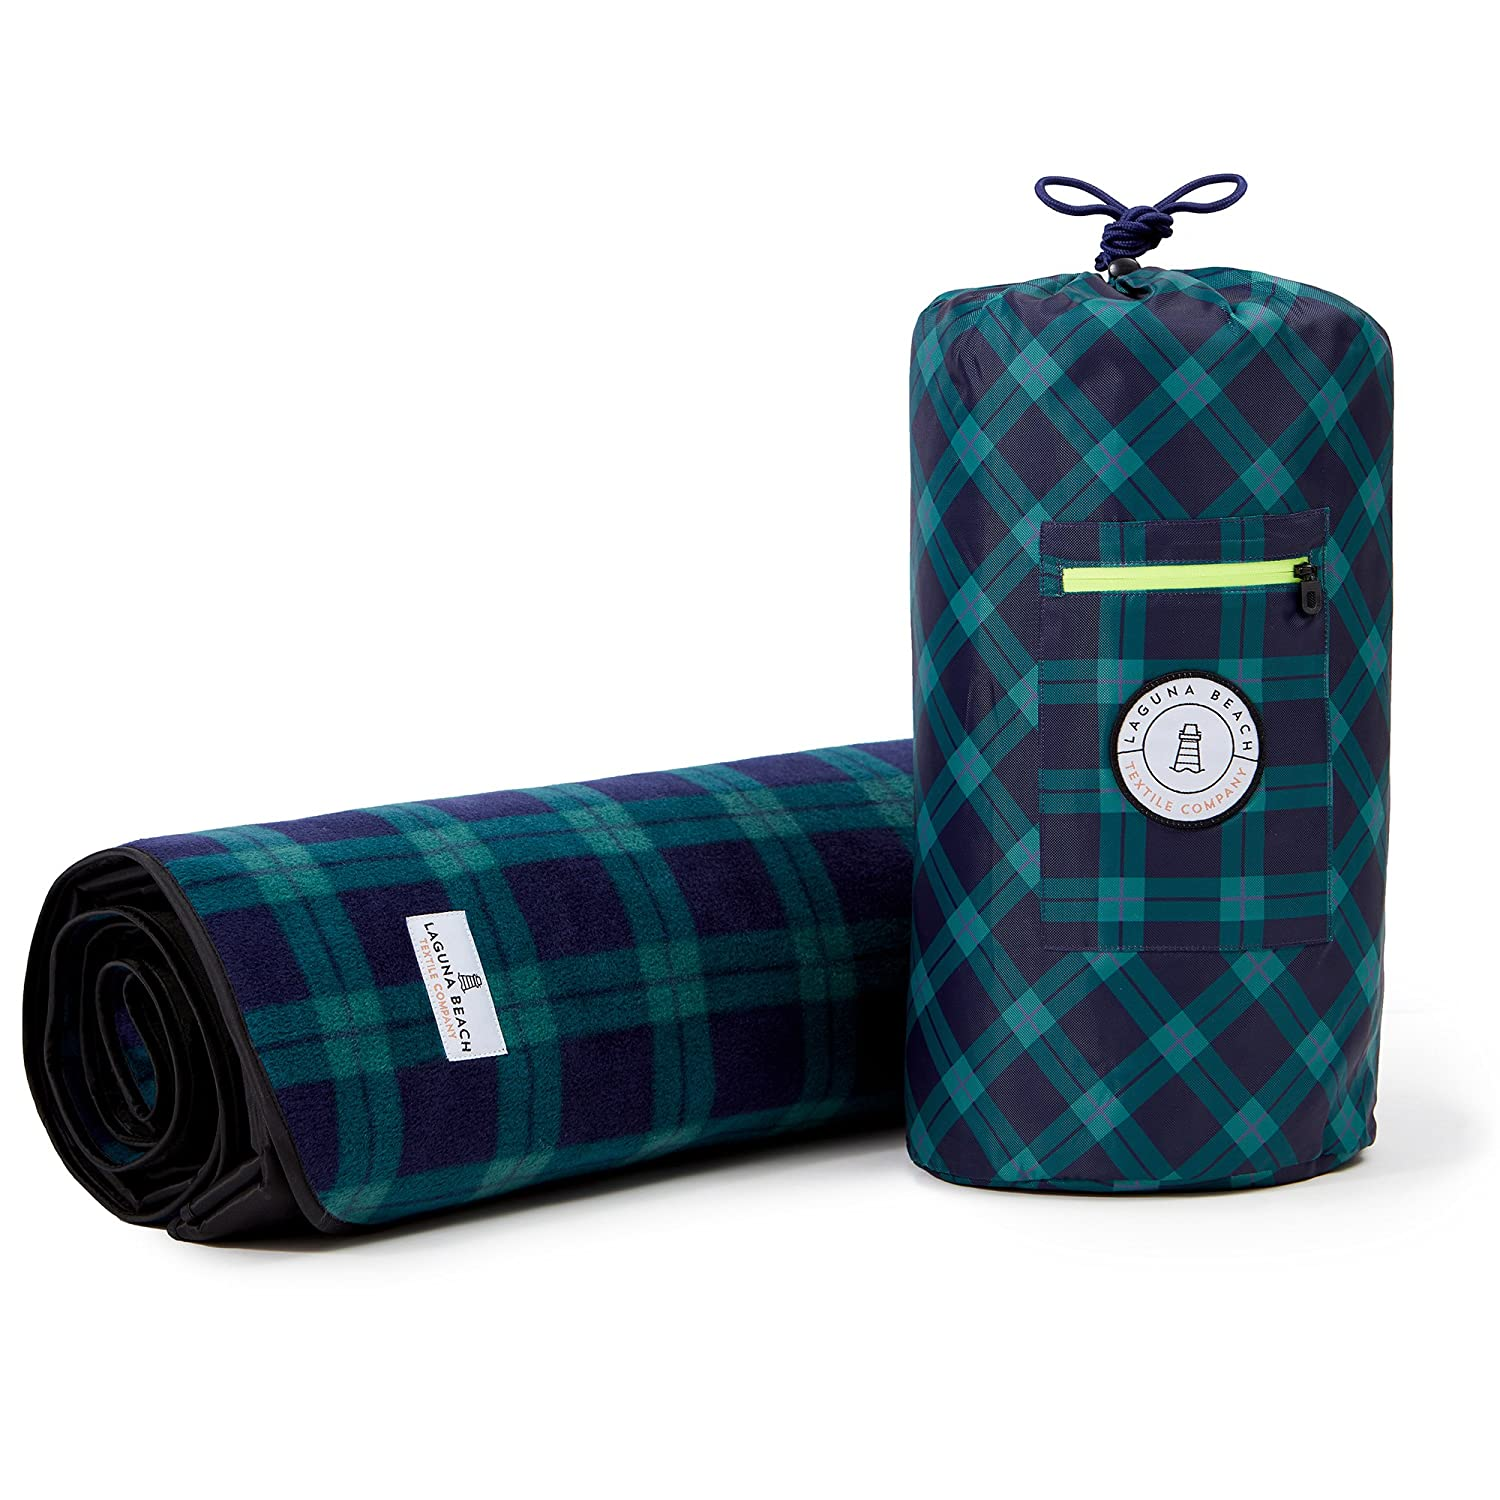 The Picnic & Outdoor Blanket travel product recommended by Adam Krell on Lifney.